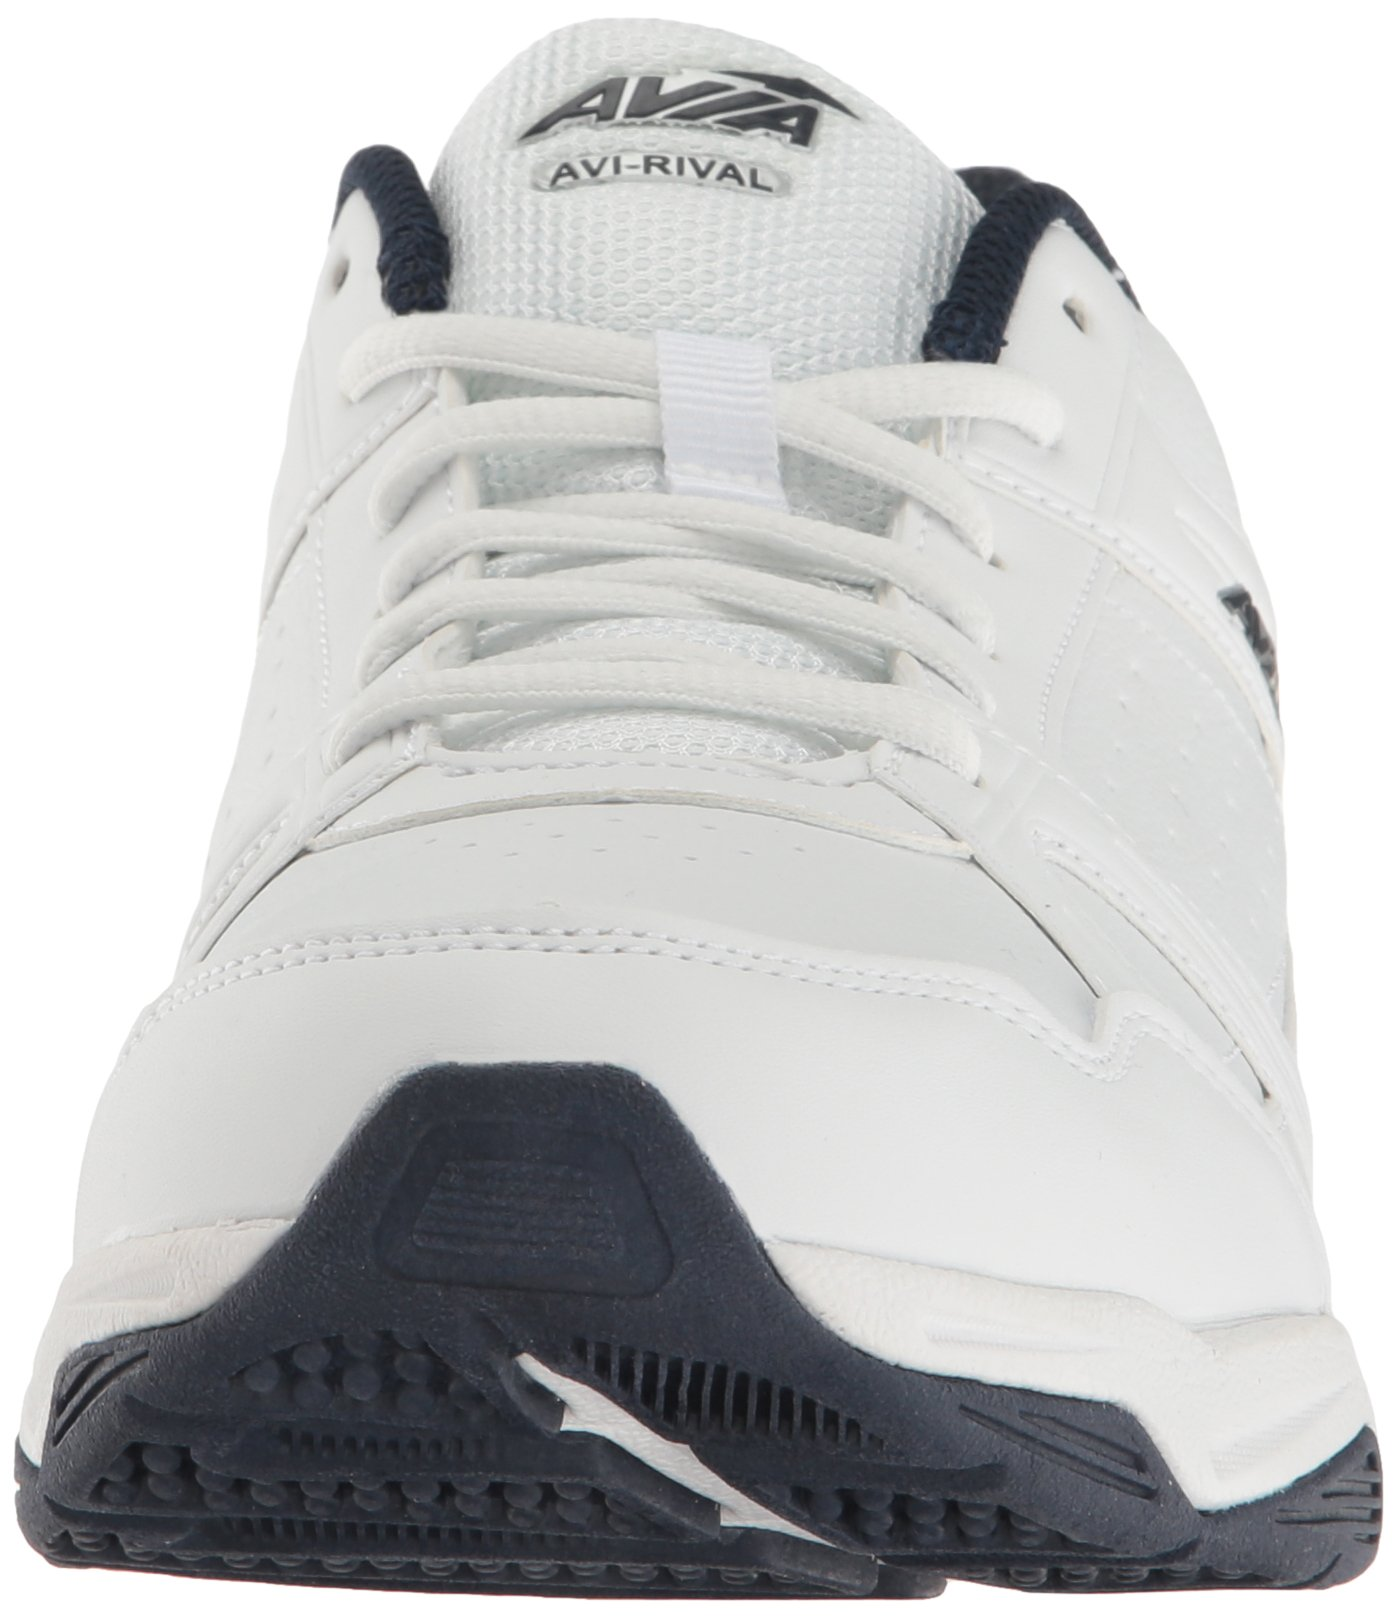 6dfd066d Avia Men's AVI-Rival Walking Shoe, White/True-Navy/Chrome Silver, 12 ...